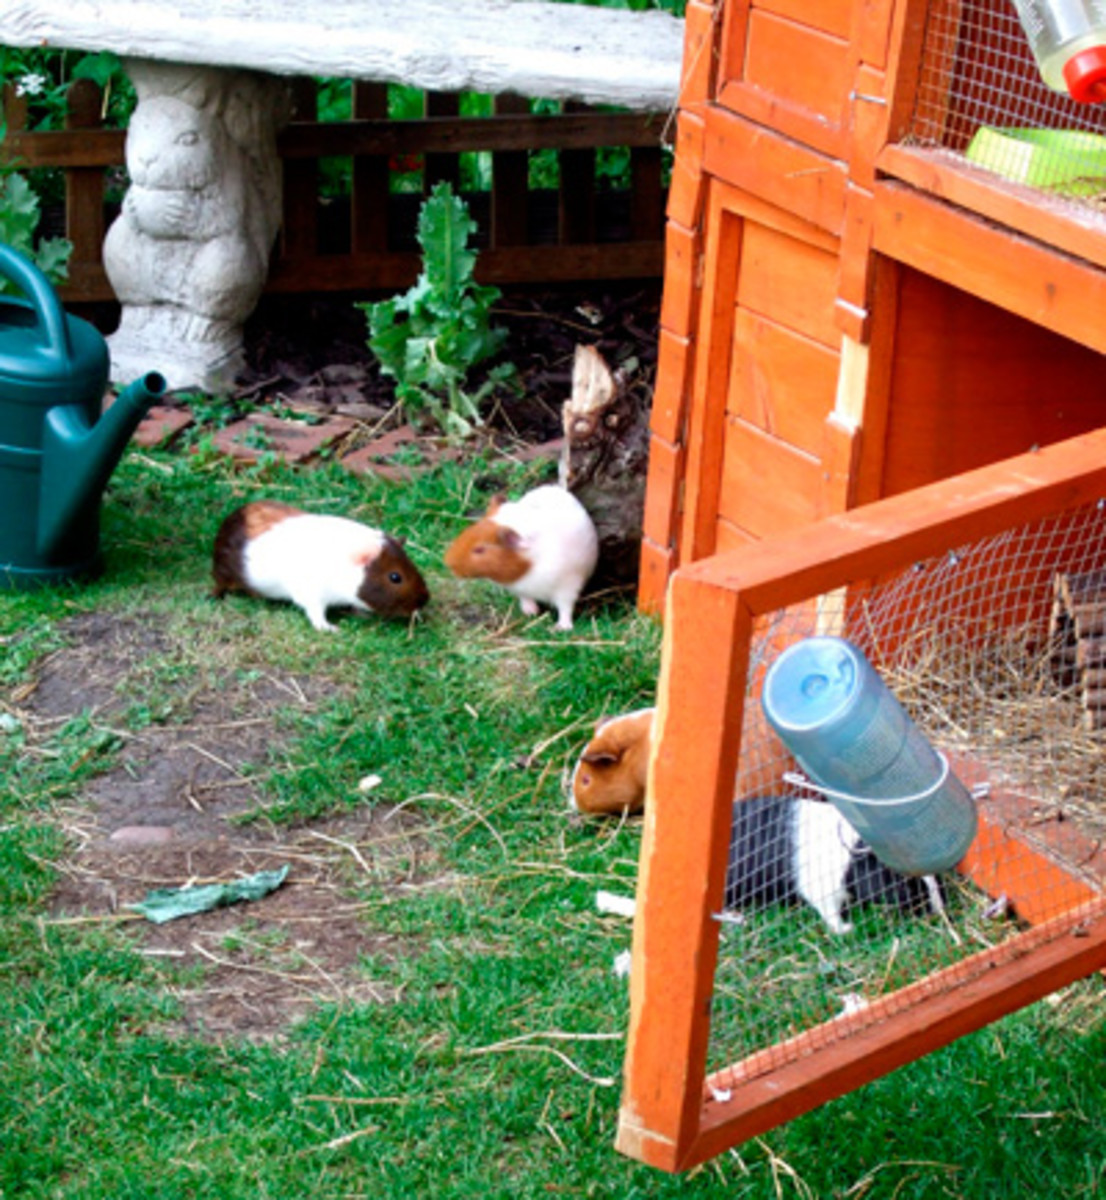 This outdoor guinea pig cage combines a shelter hutch with a grassy area for grazing.